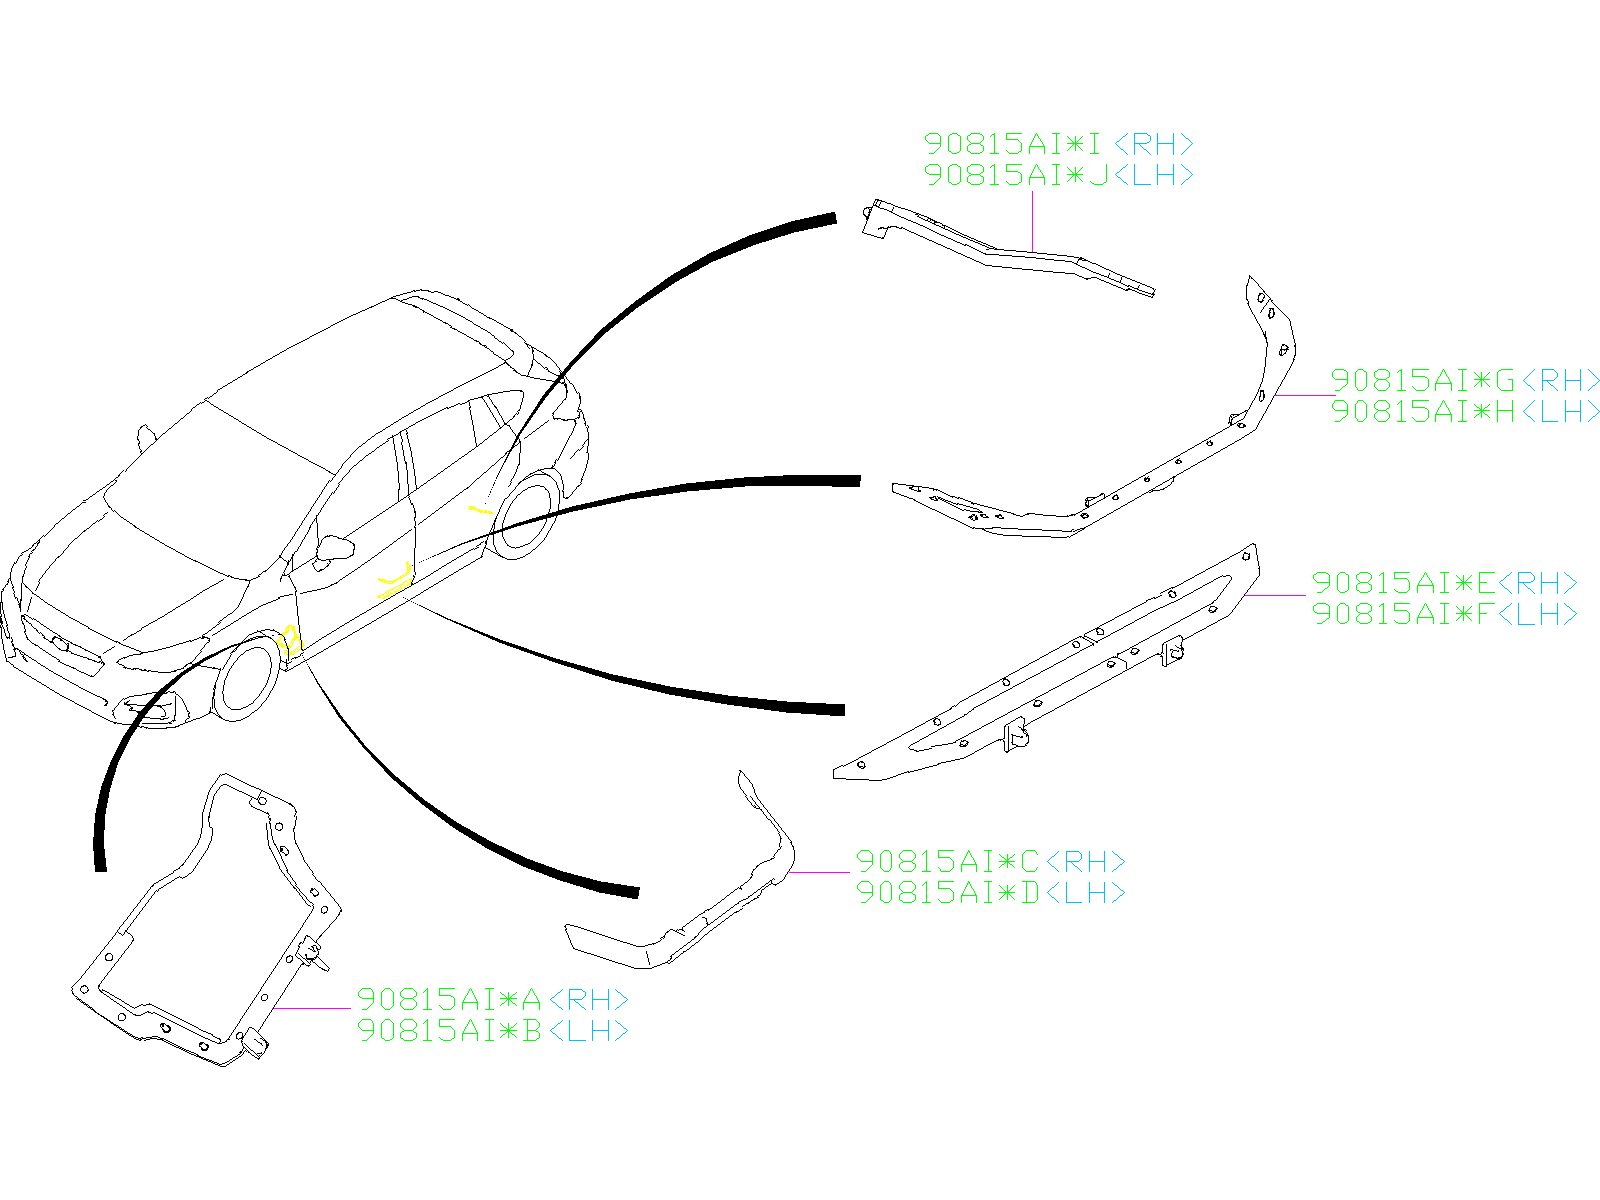 96 Subaru Impreza Stereo Wiring Diagram Schematics Tundra 1996 Simple Guide About U2022 Toyota